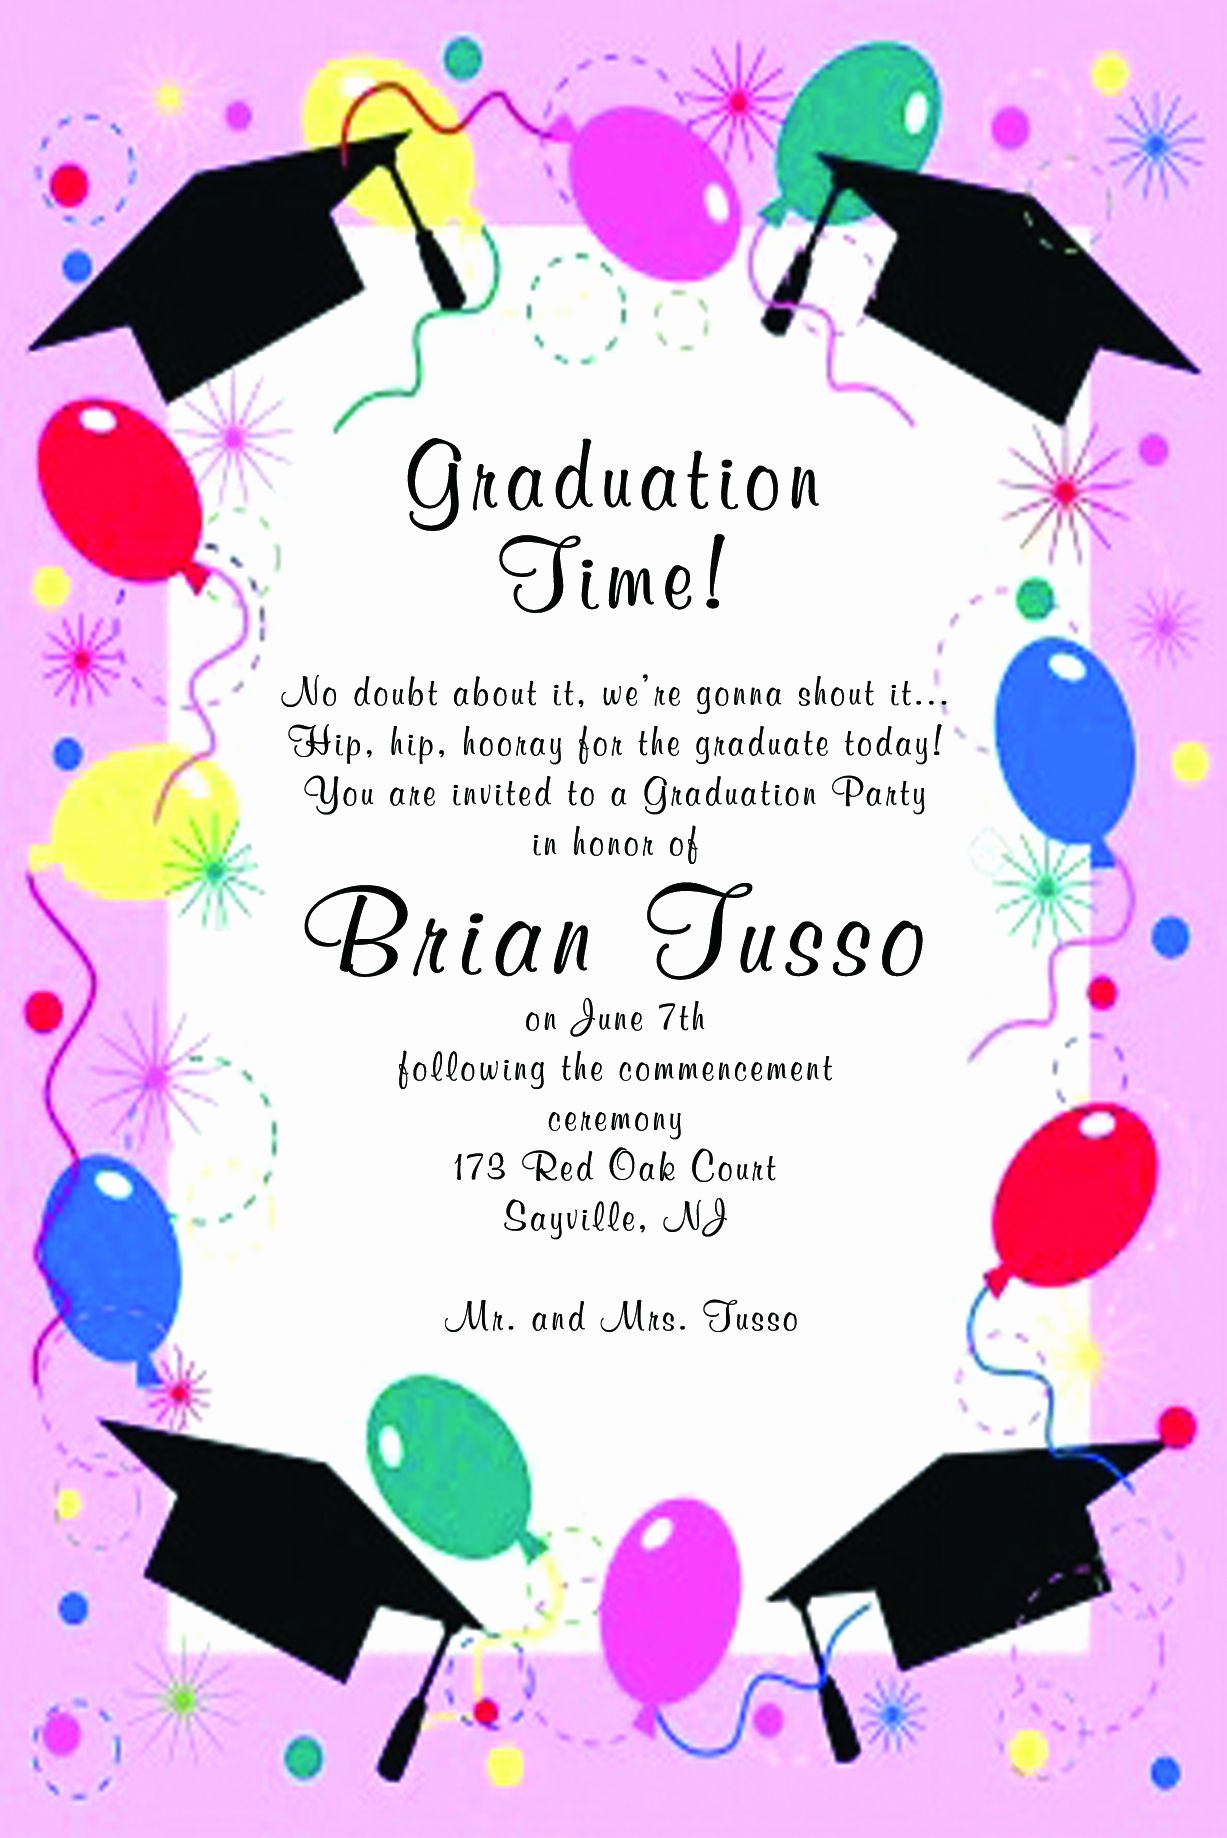 Graduation Invitation Free Templates Unique Graduation Invitation Template Graduation Invitation